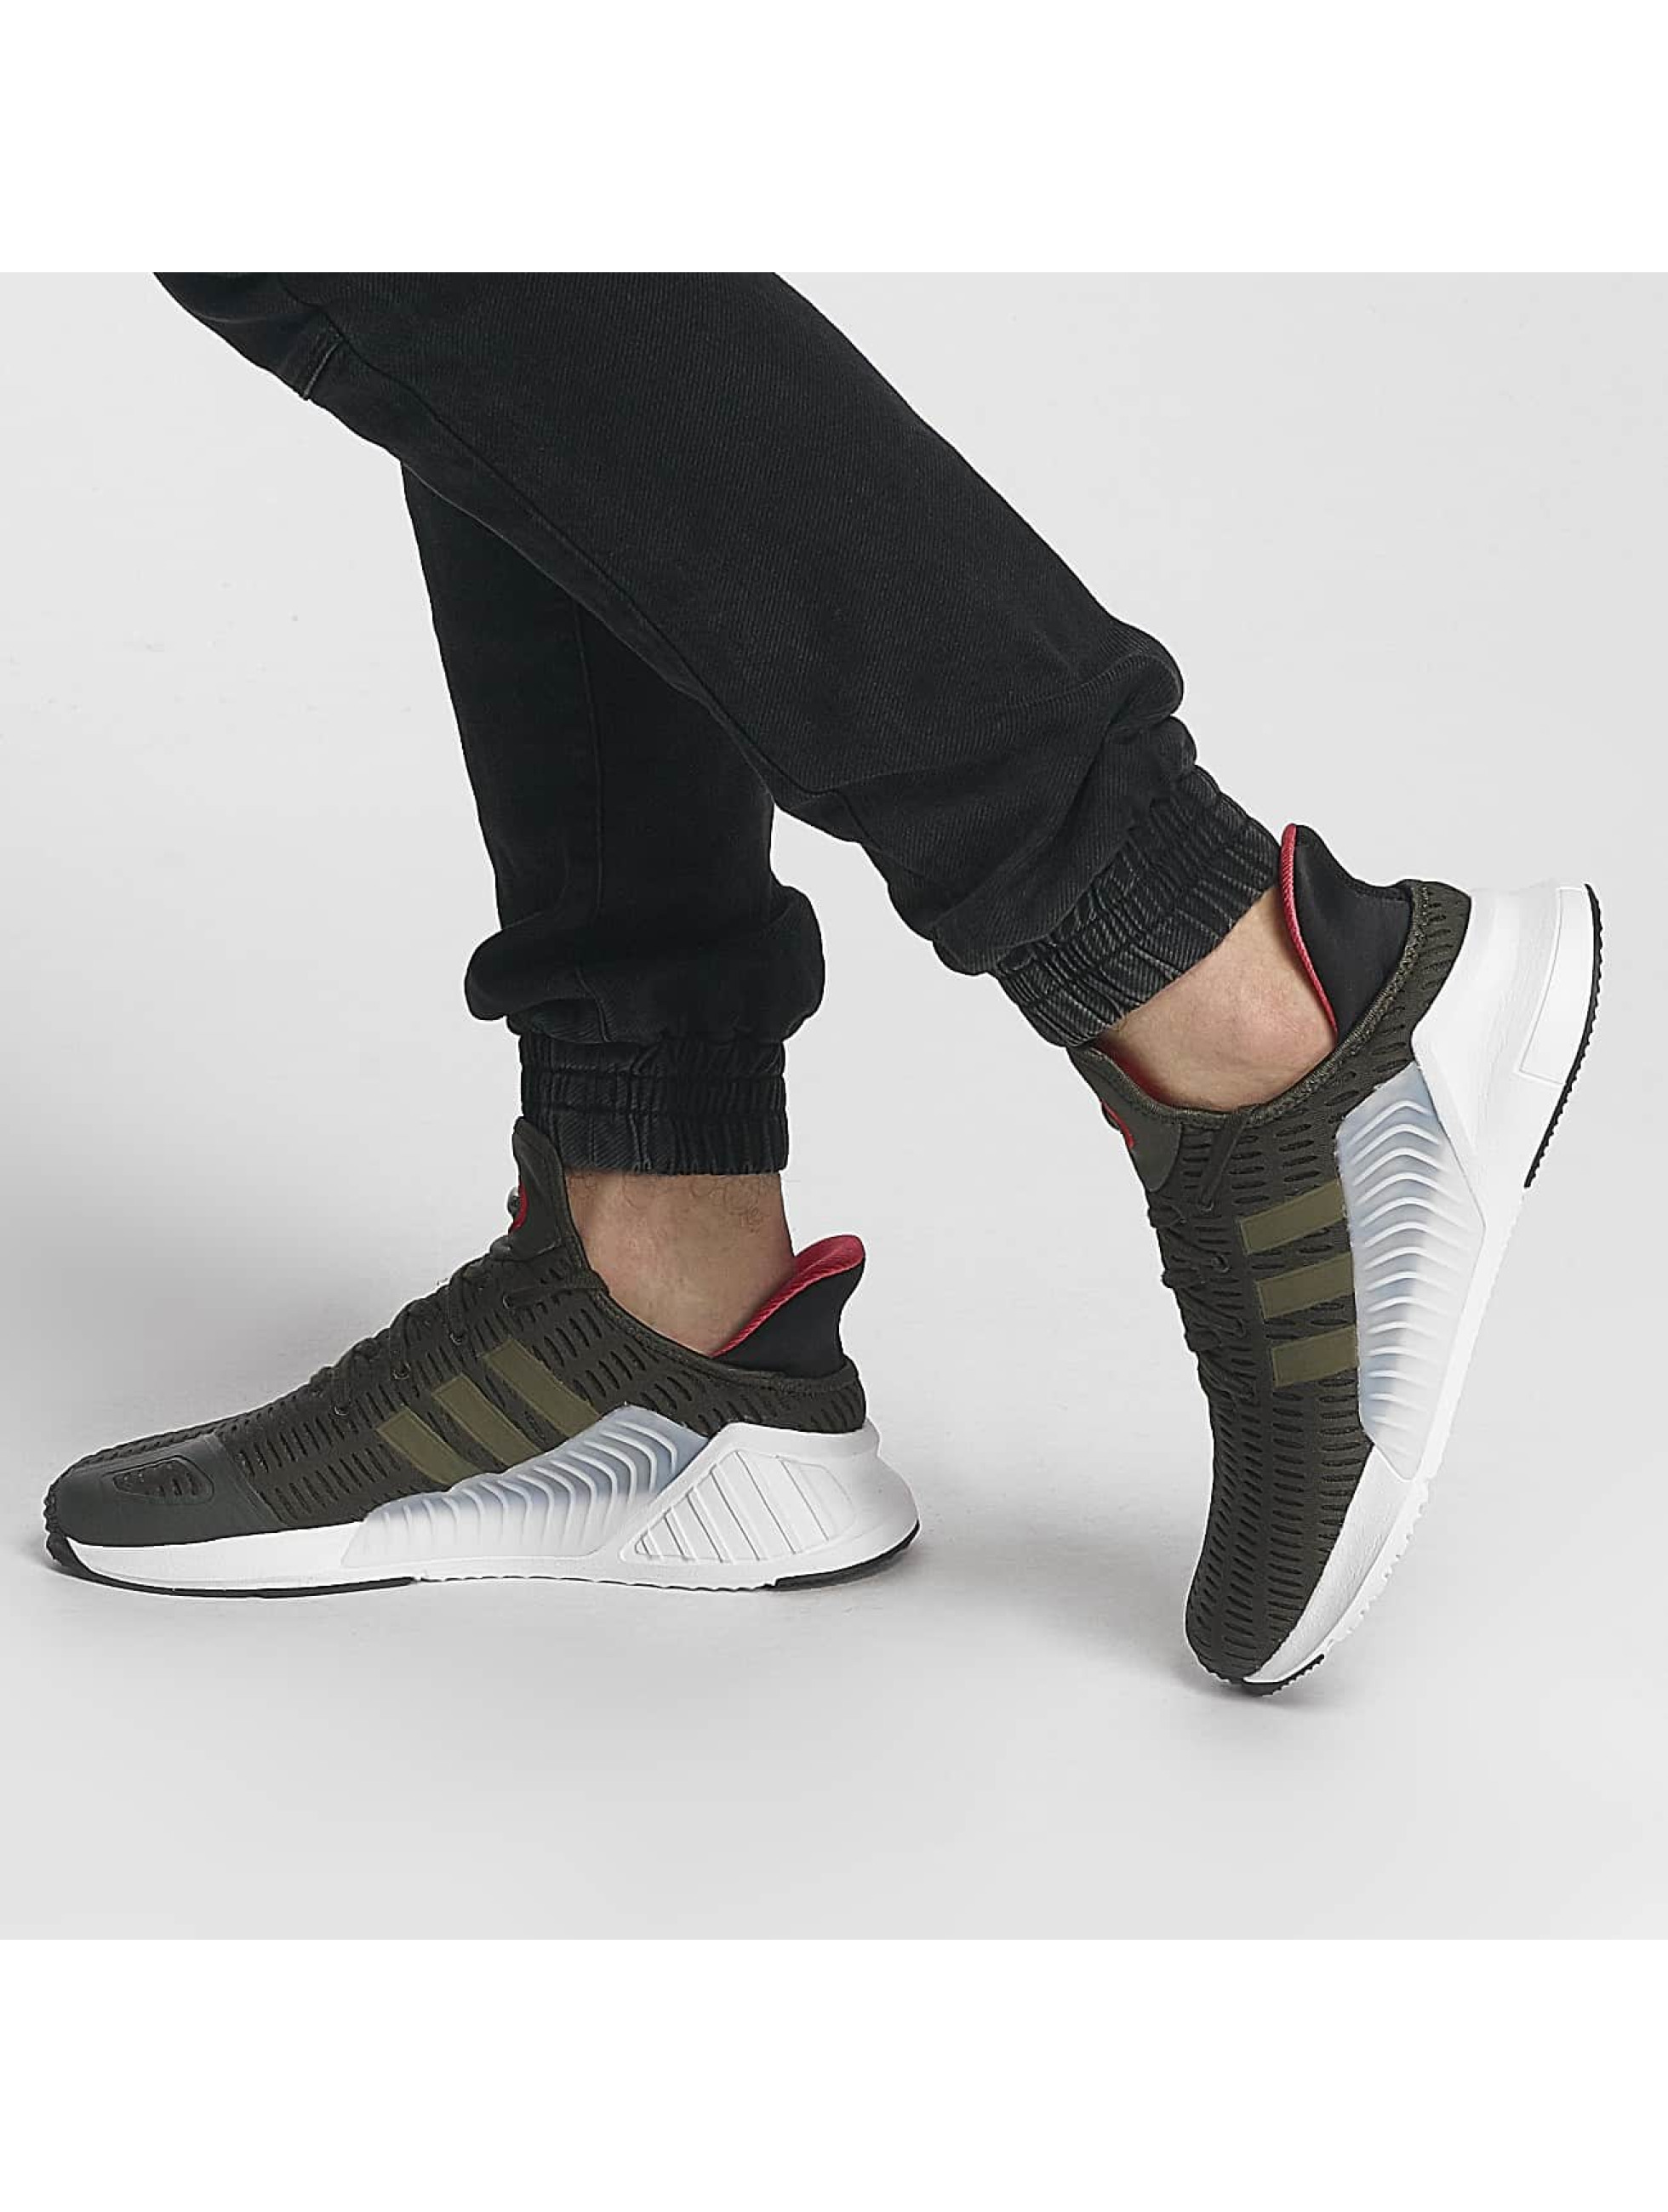 adidas Sneakers Climacool 02/17 green